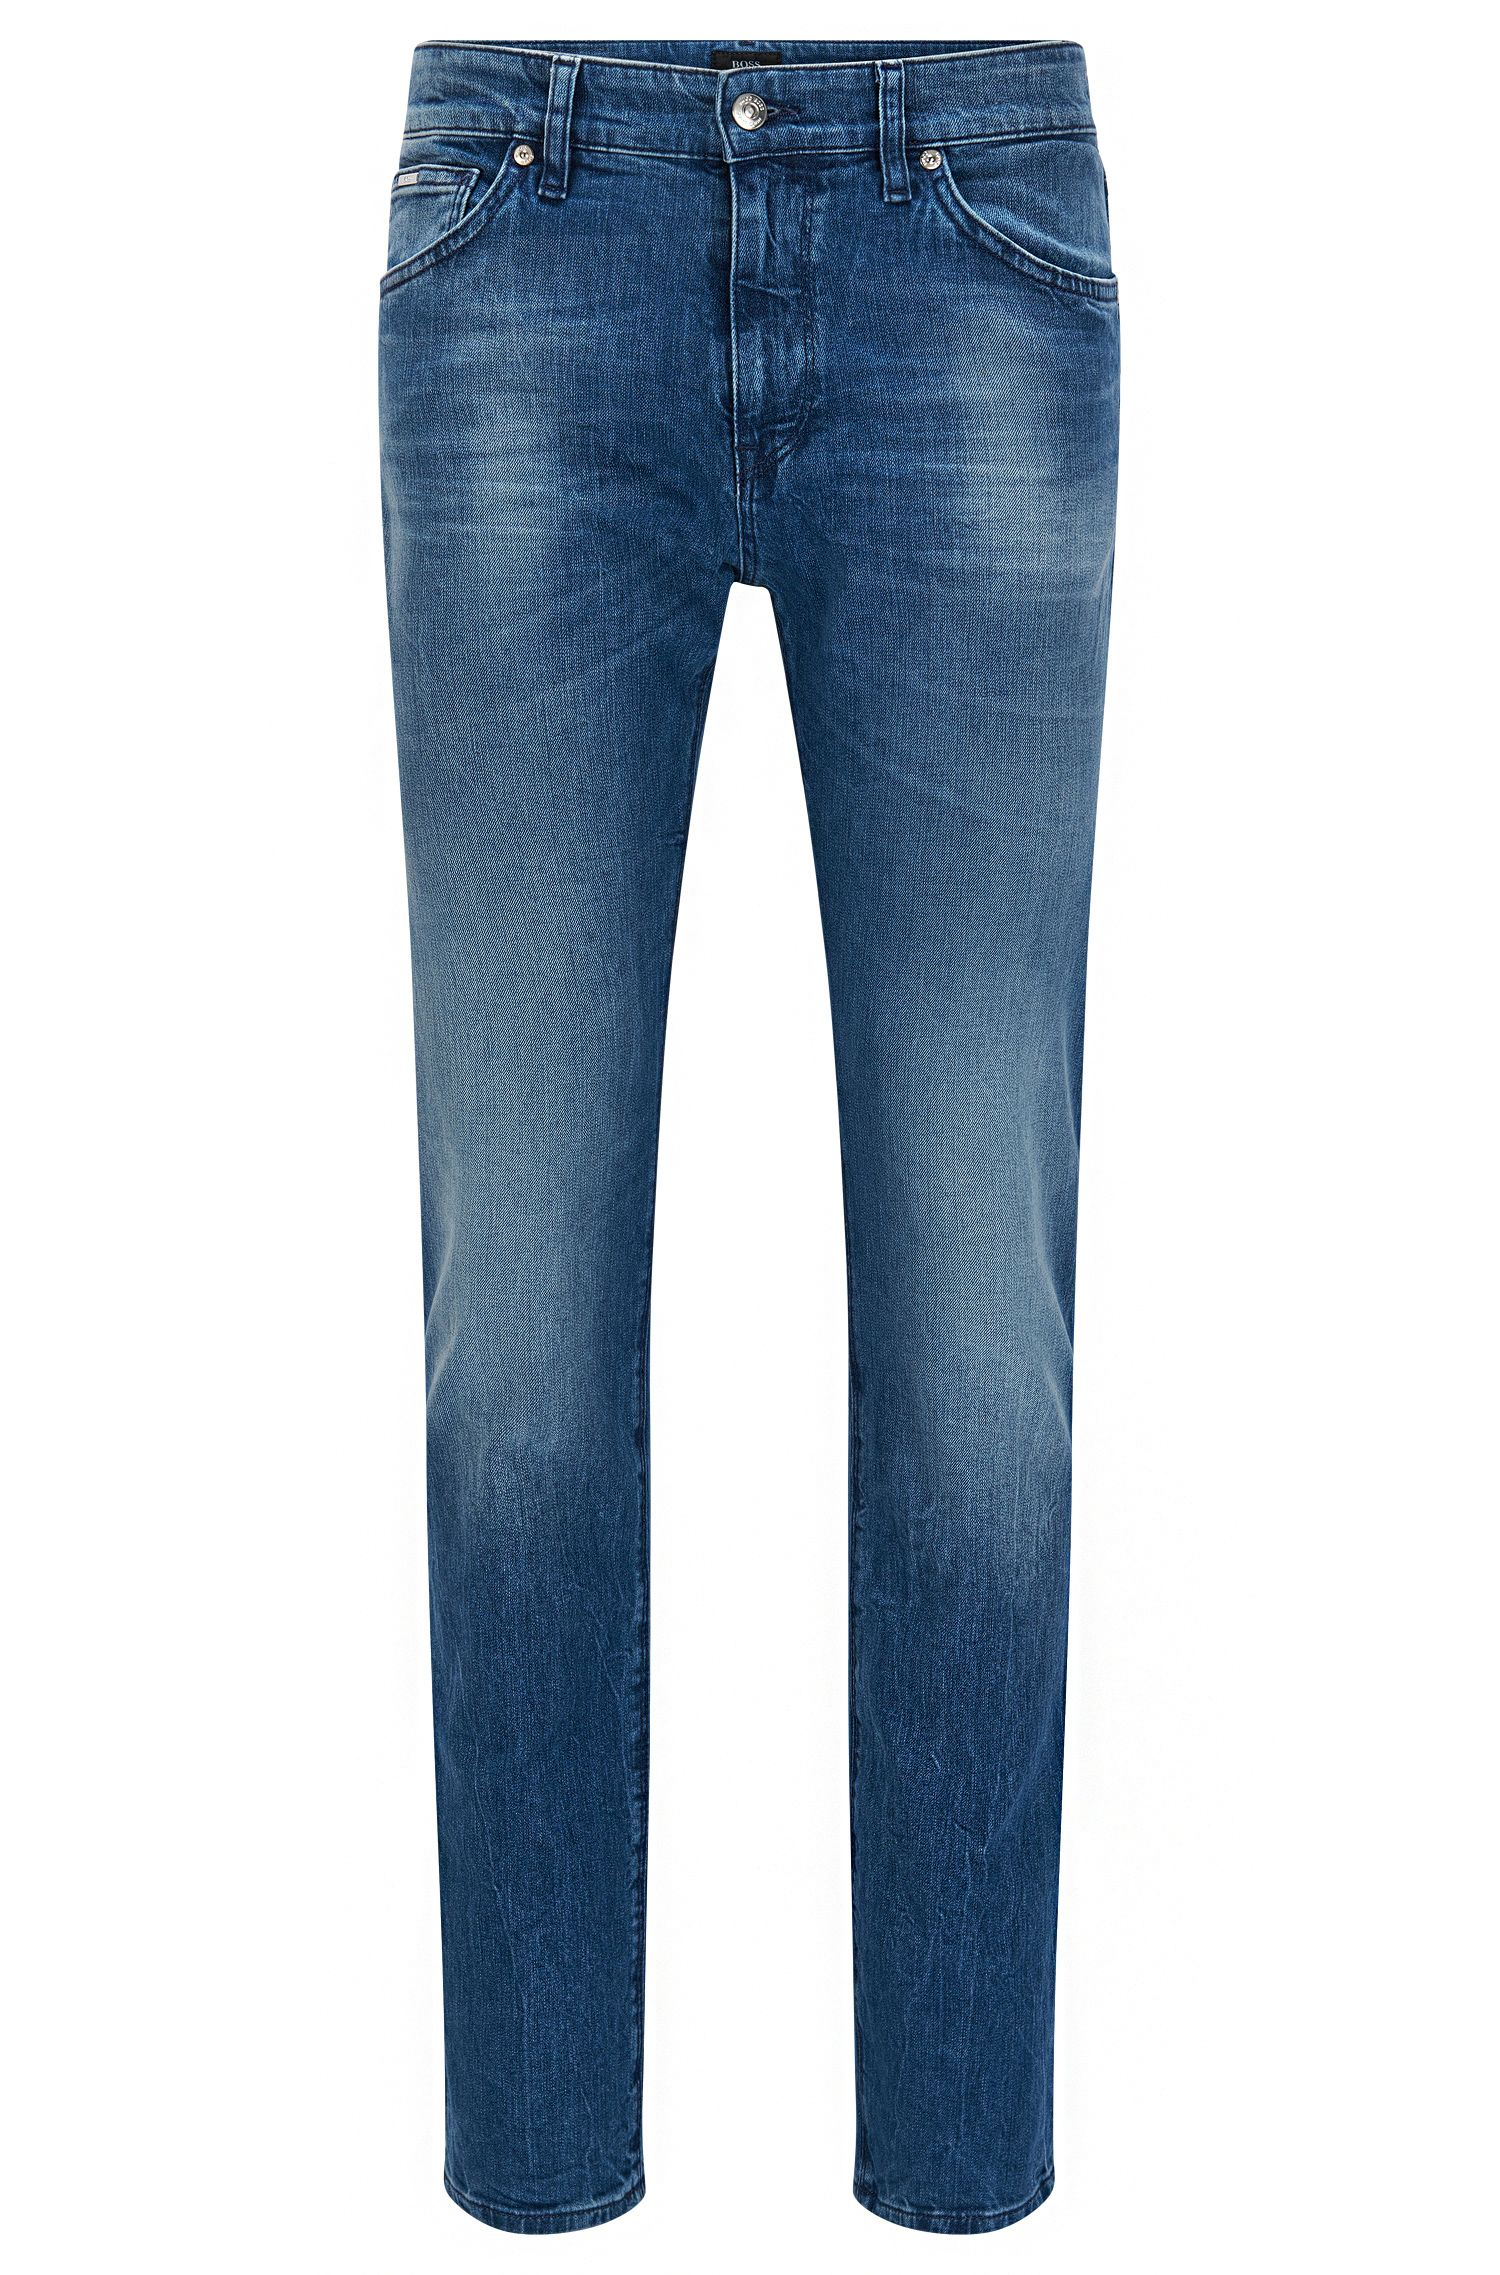 Jeans regular fit in denim elasticizzato con finiture scolorite